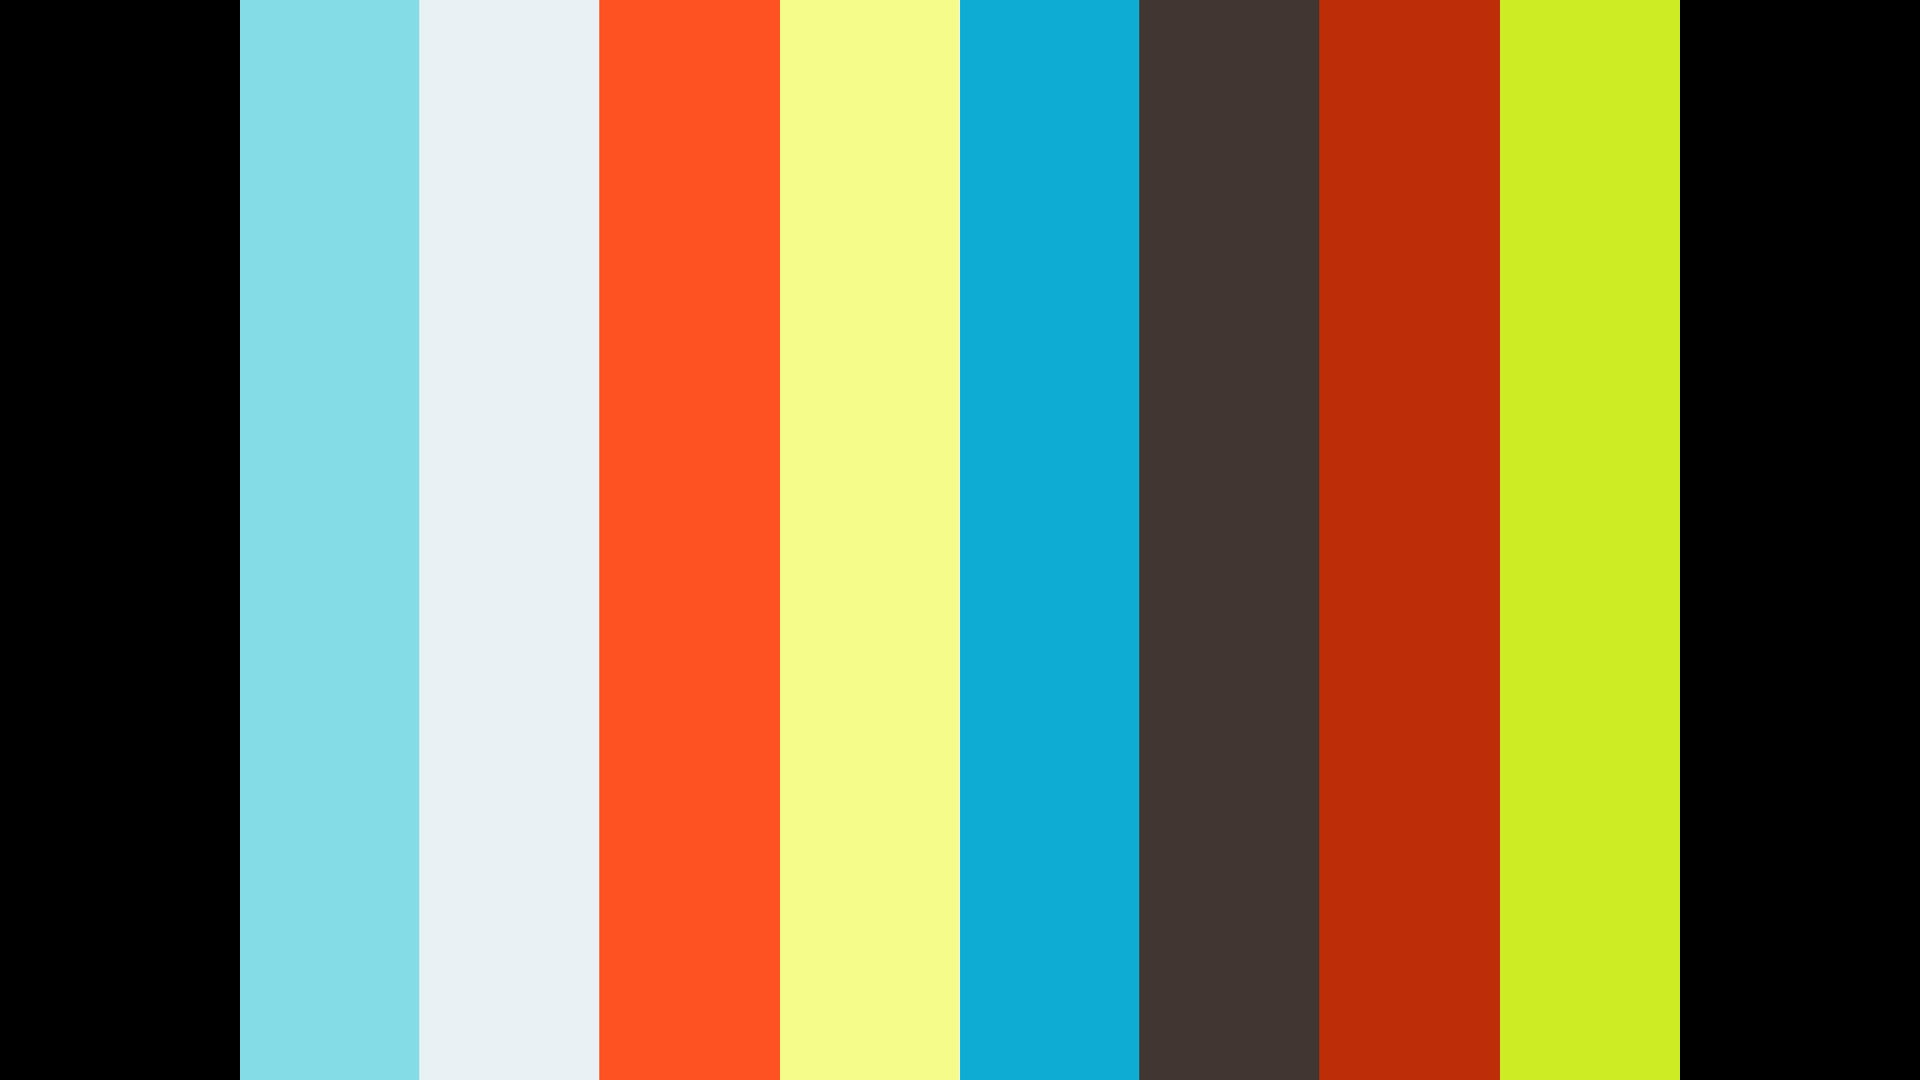 Joffrey West Los Angeles Intensive 2013 - Speed Up To Slow Down, Choreography by Arturo Fernandez - Joffrey Ballet School